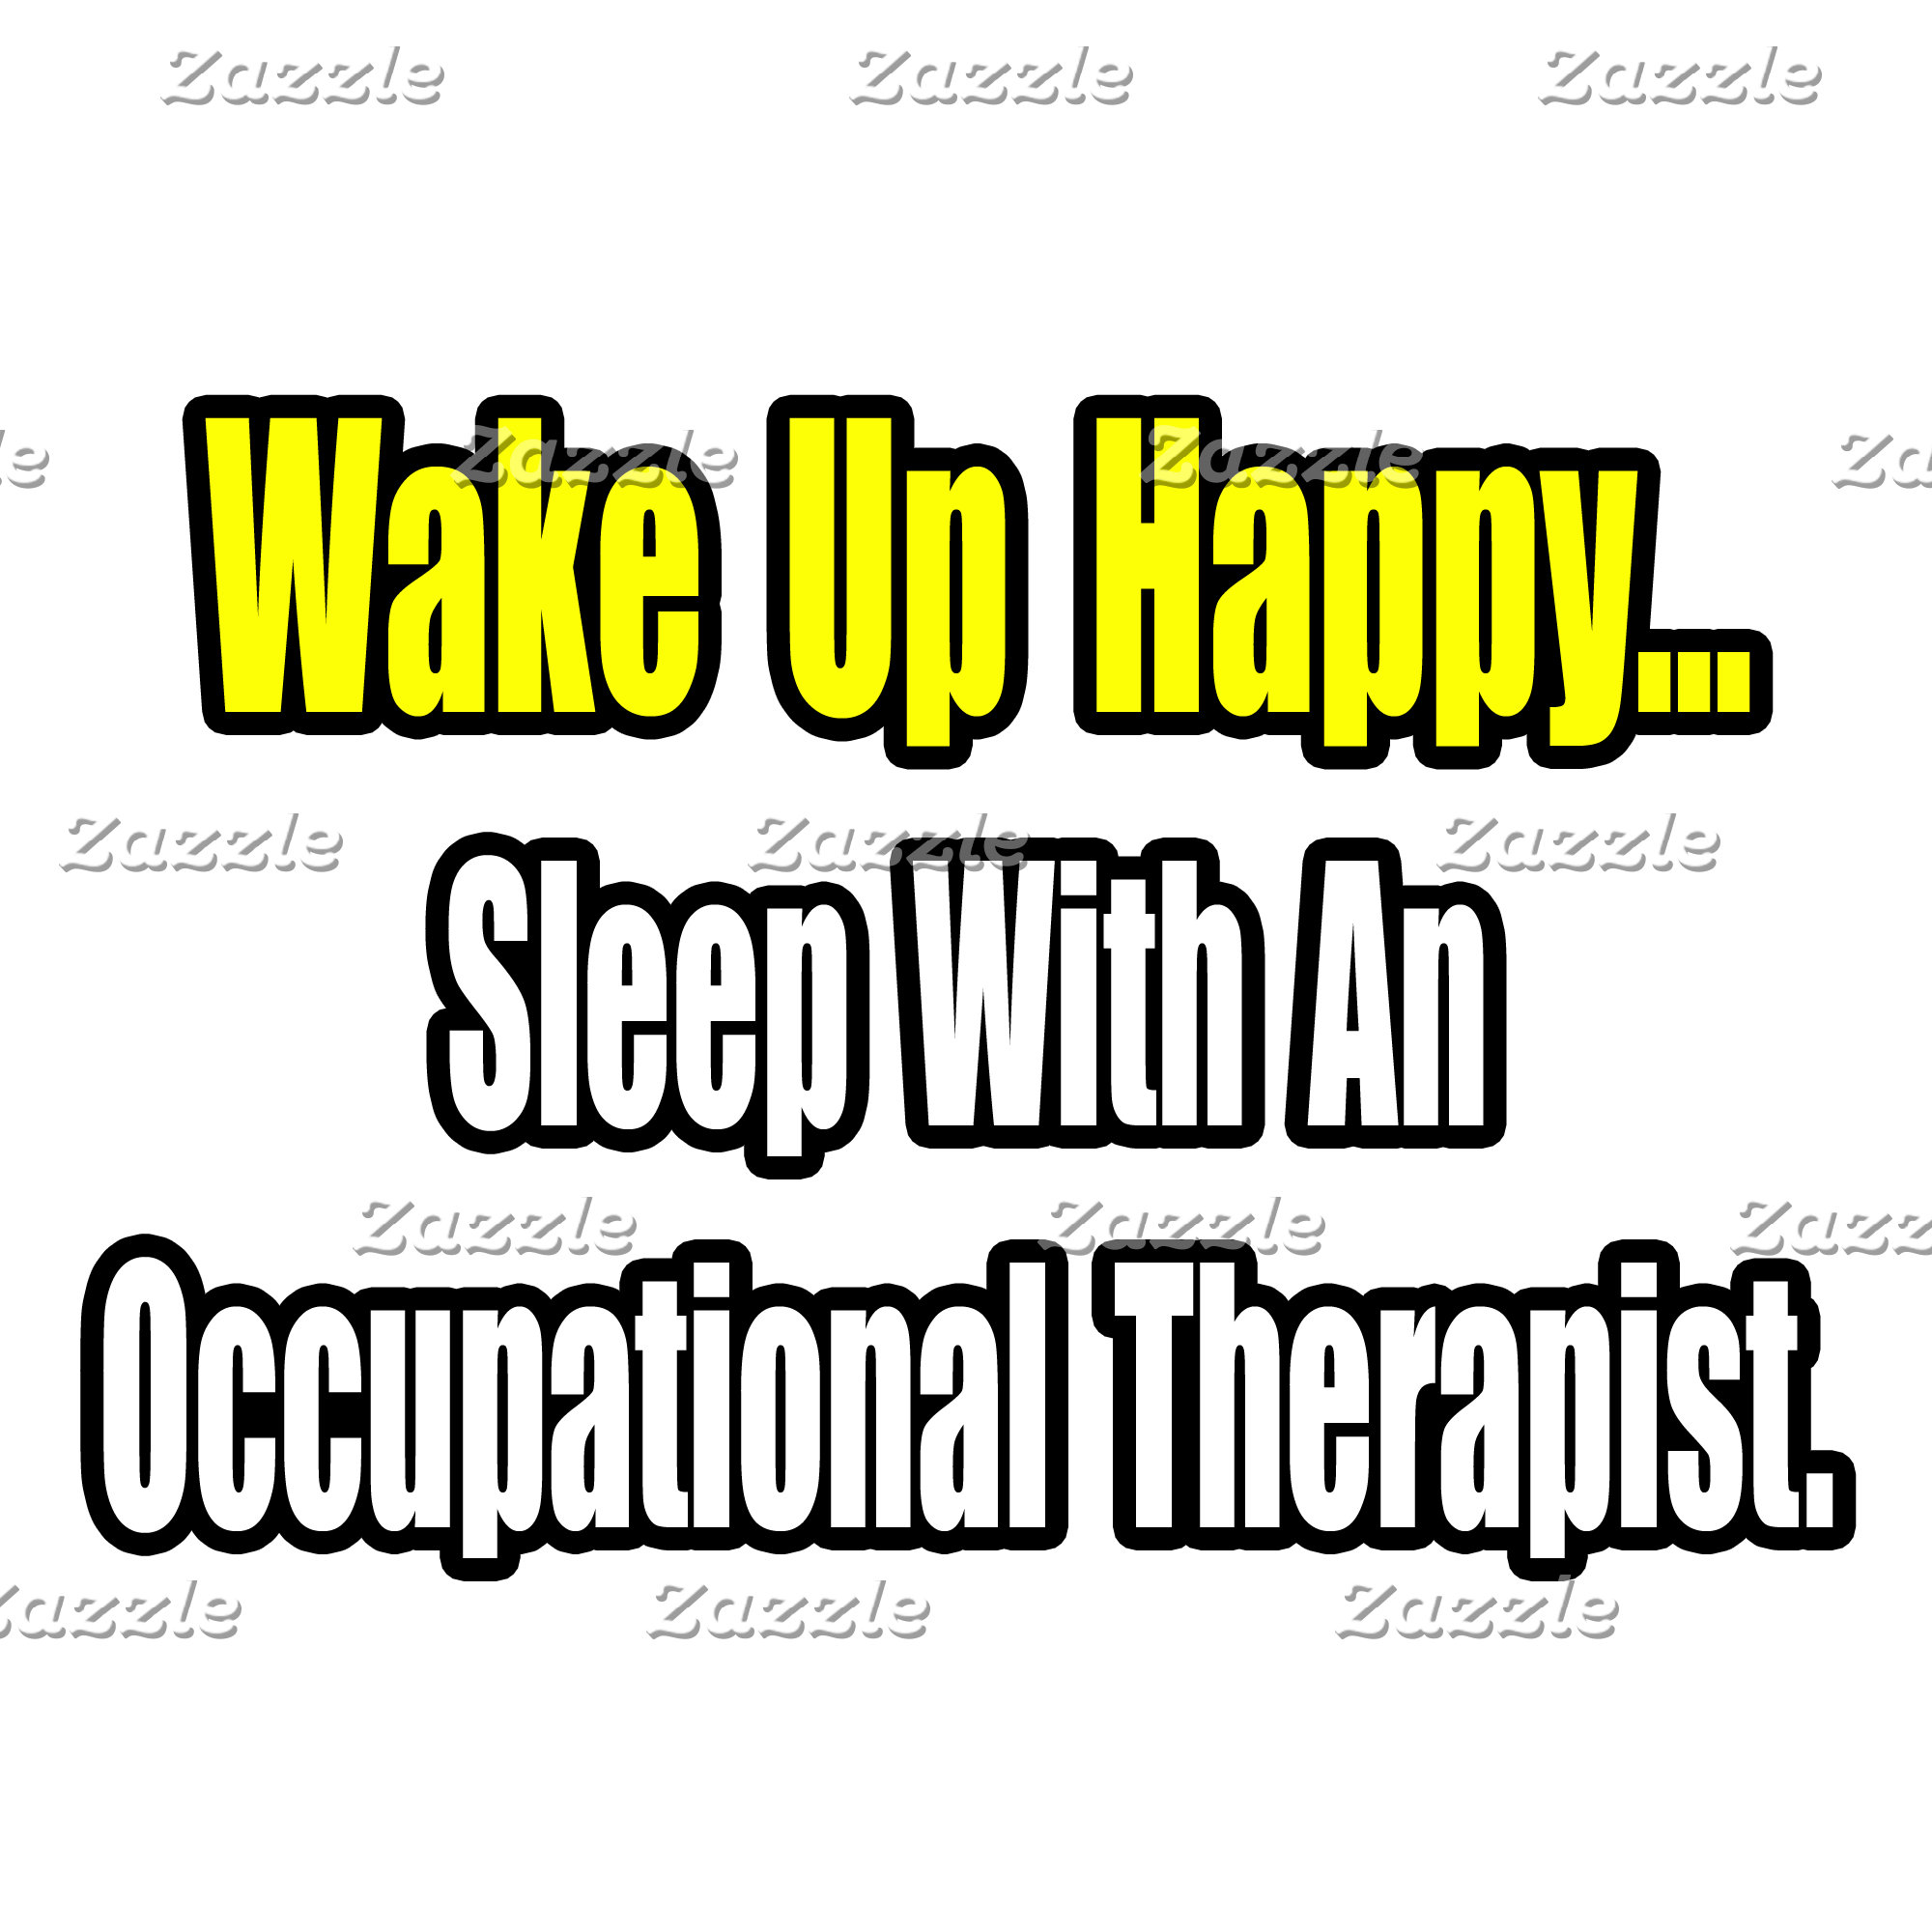 Sleep With An Occupational Therapist